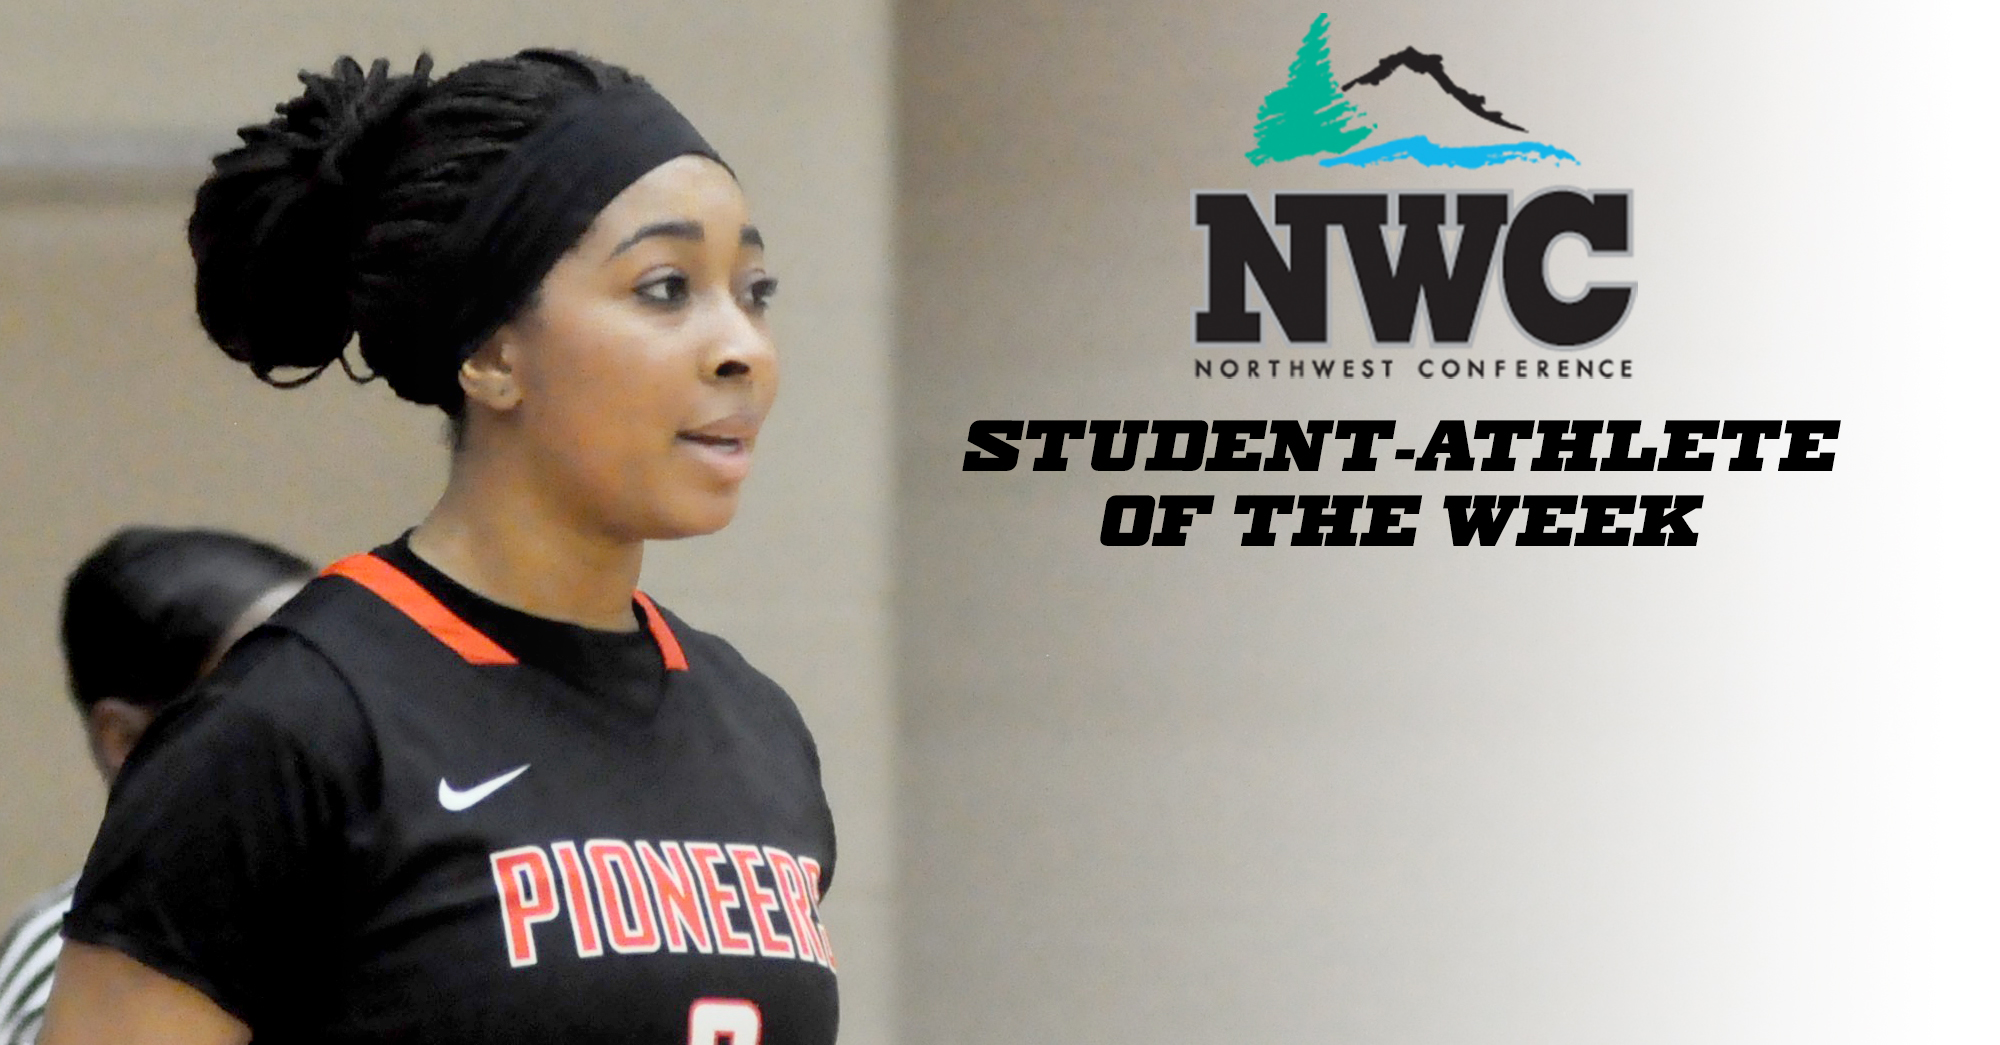 Afolabi snags fourth double-double, NWC honors